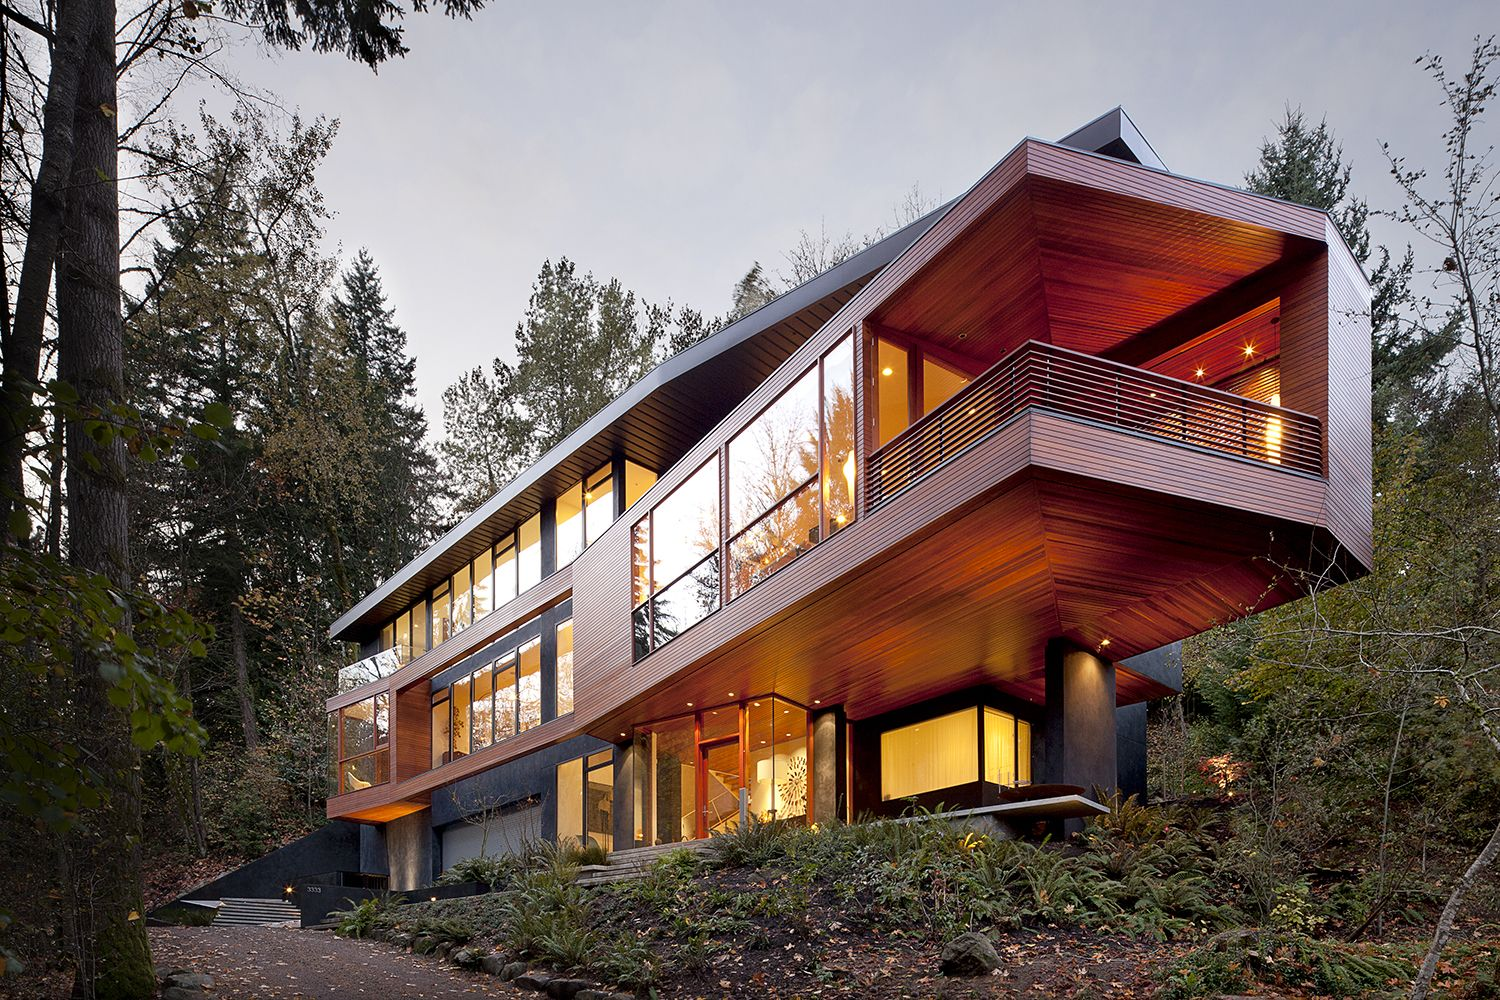 The Cullen S House Twilight House Contemporary Building Modern